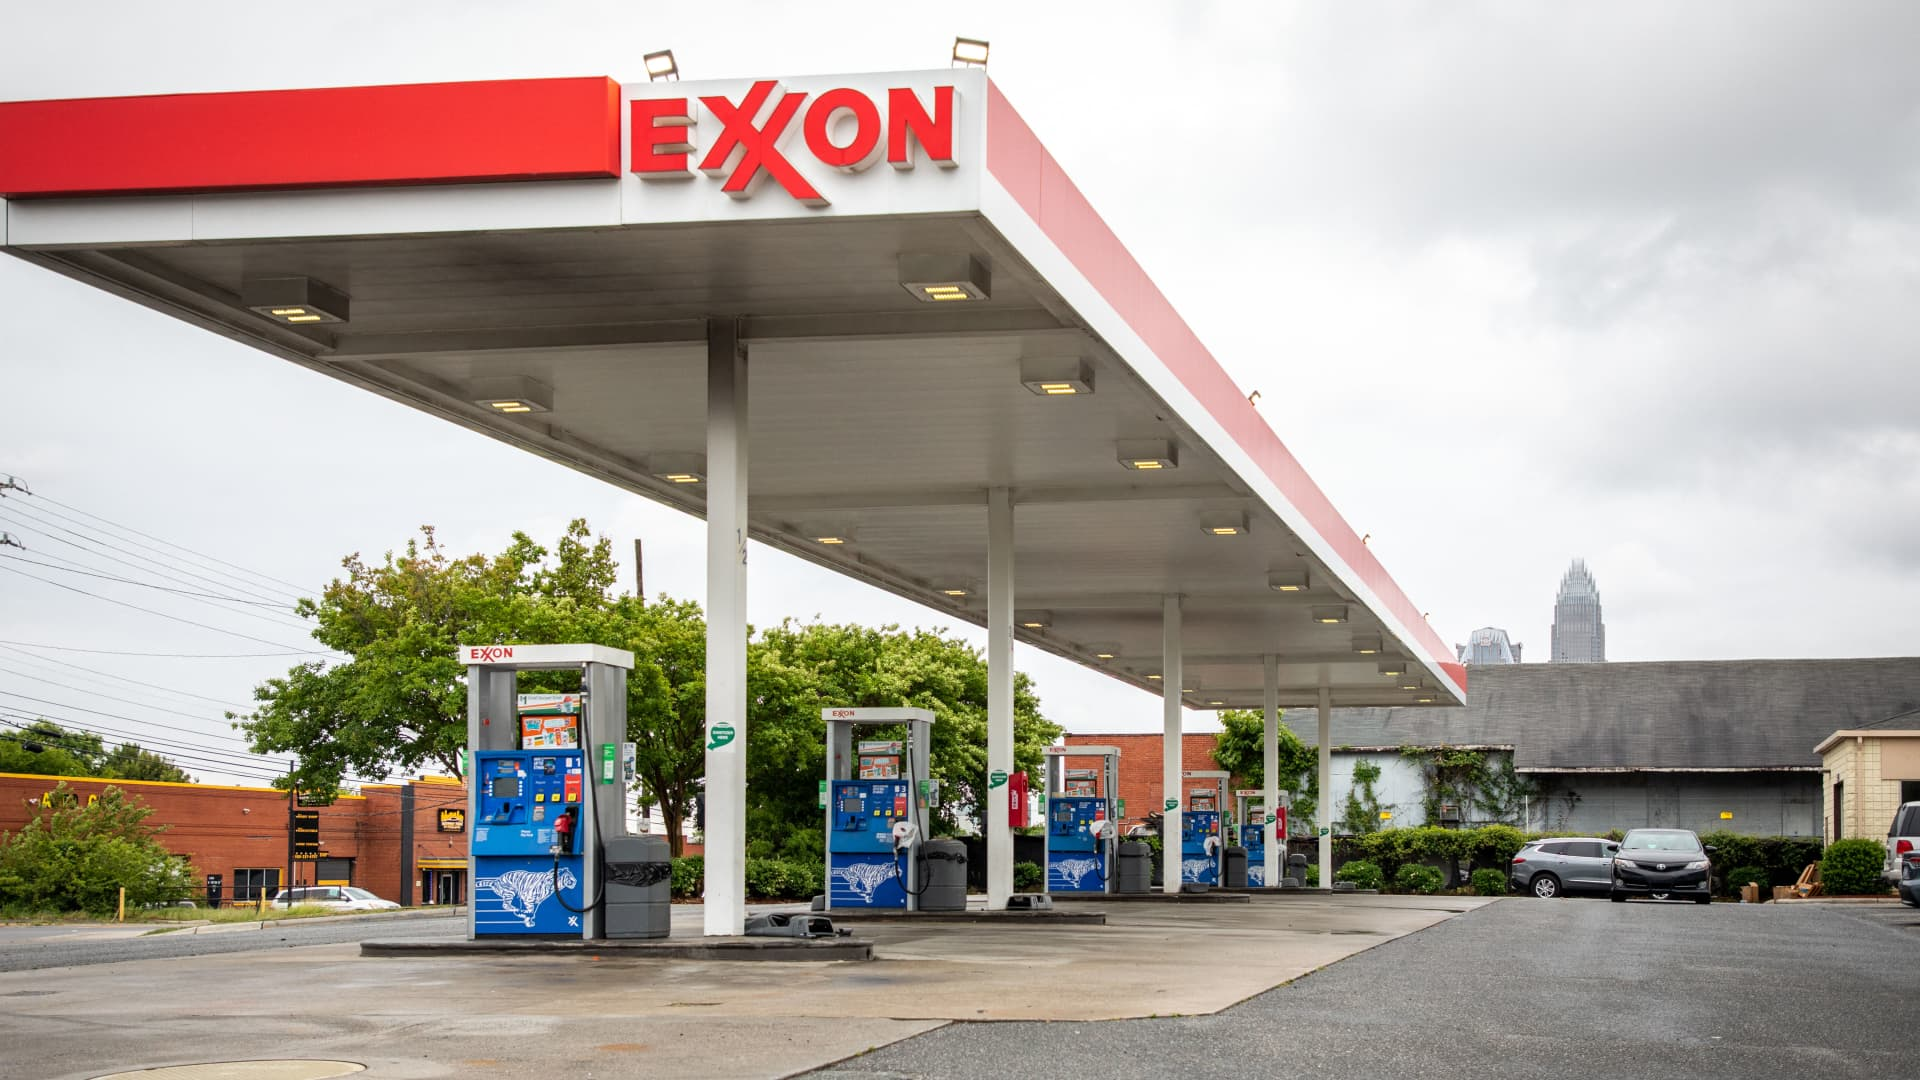 Gas pumps sit empty at an Exxon gas station in Charlotte, North Carolina on May 12, 2021.